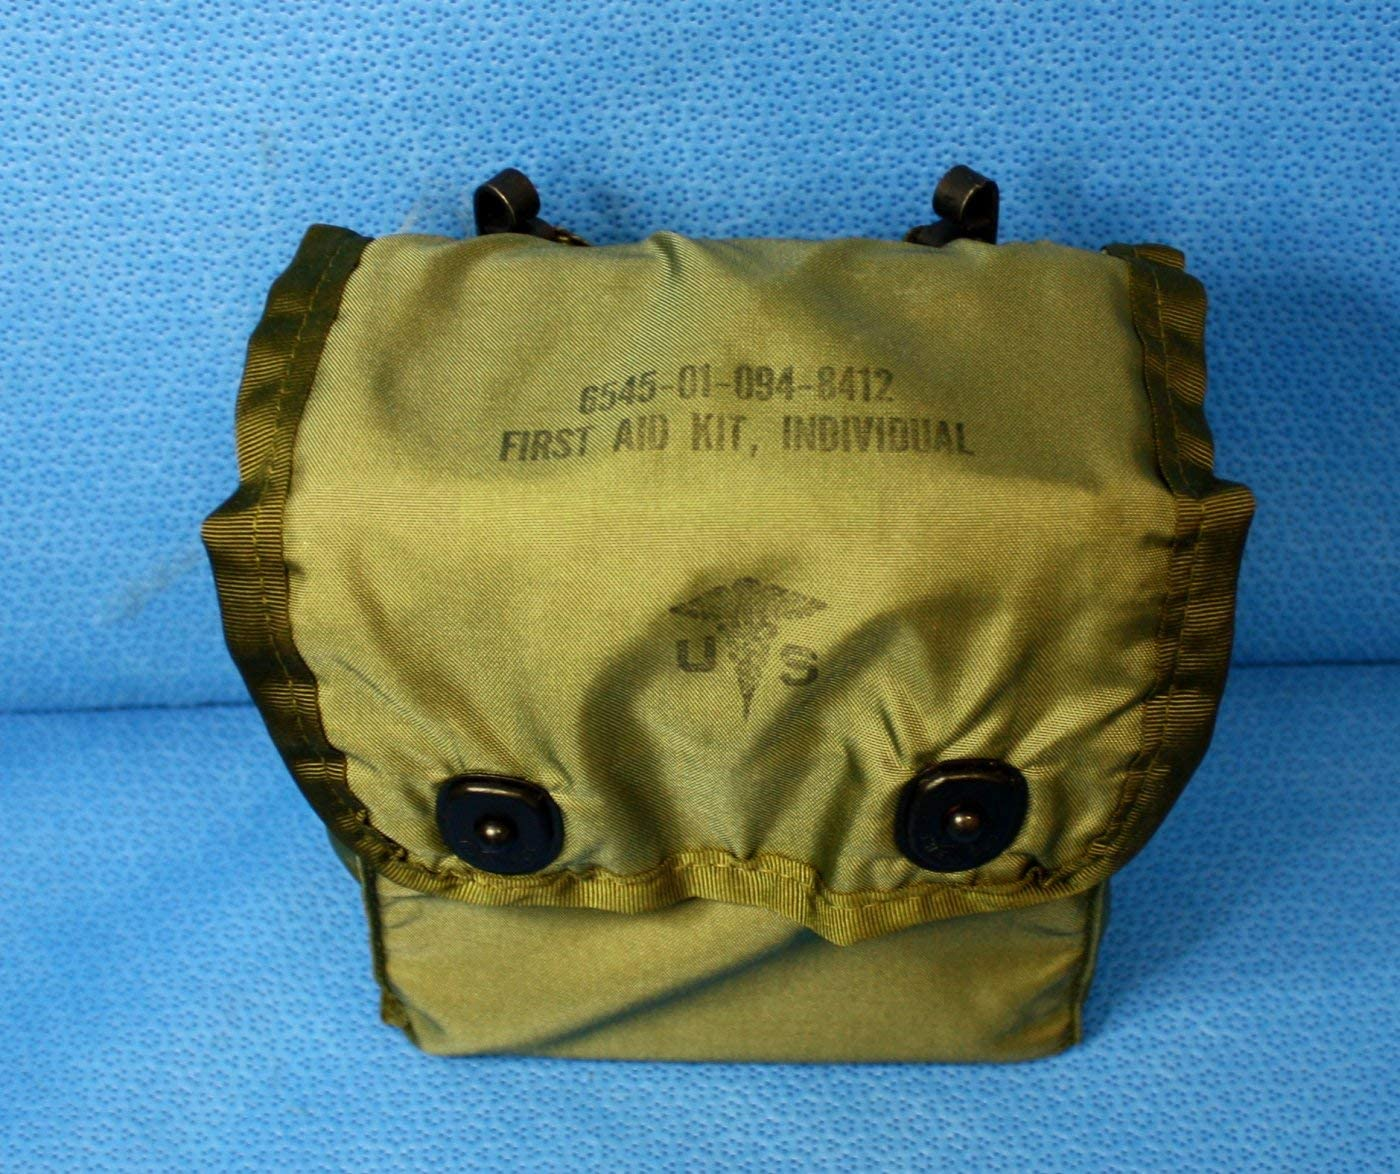 """Genuine First Aid Pouch /""""USGI/"""" The Real Deal/""""  NSN 6545 01 094 8412"""